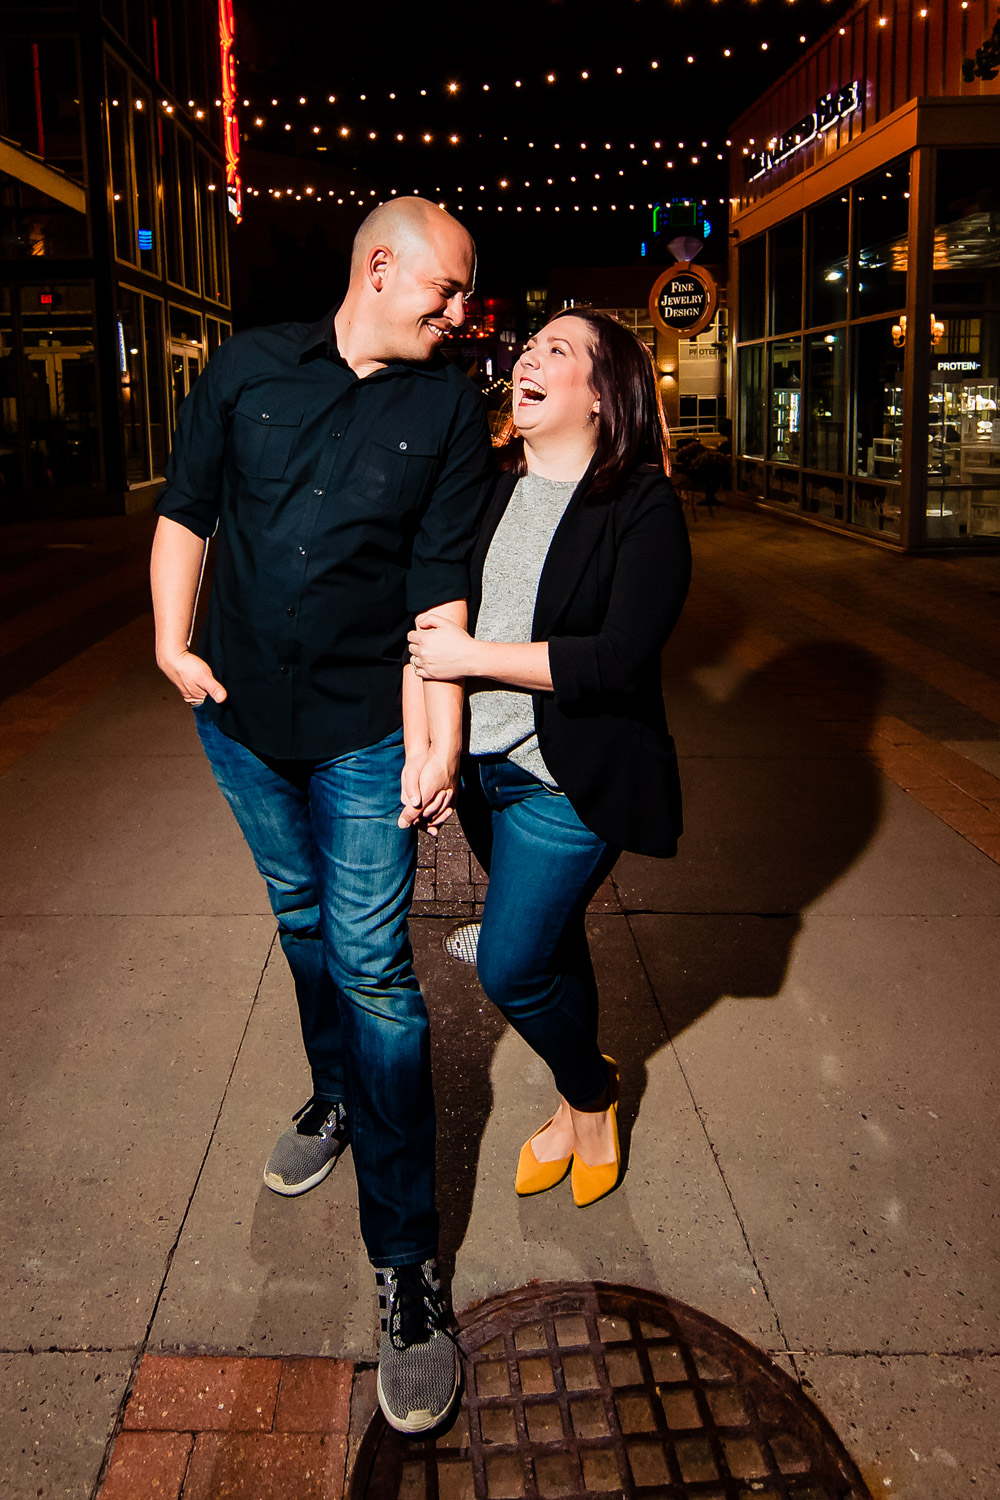 Rivas Weddings | A candid picture of Rivas owners Kyle Rivas and Melissa Rich in Kansas City's Power and Light District.